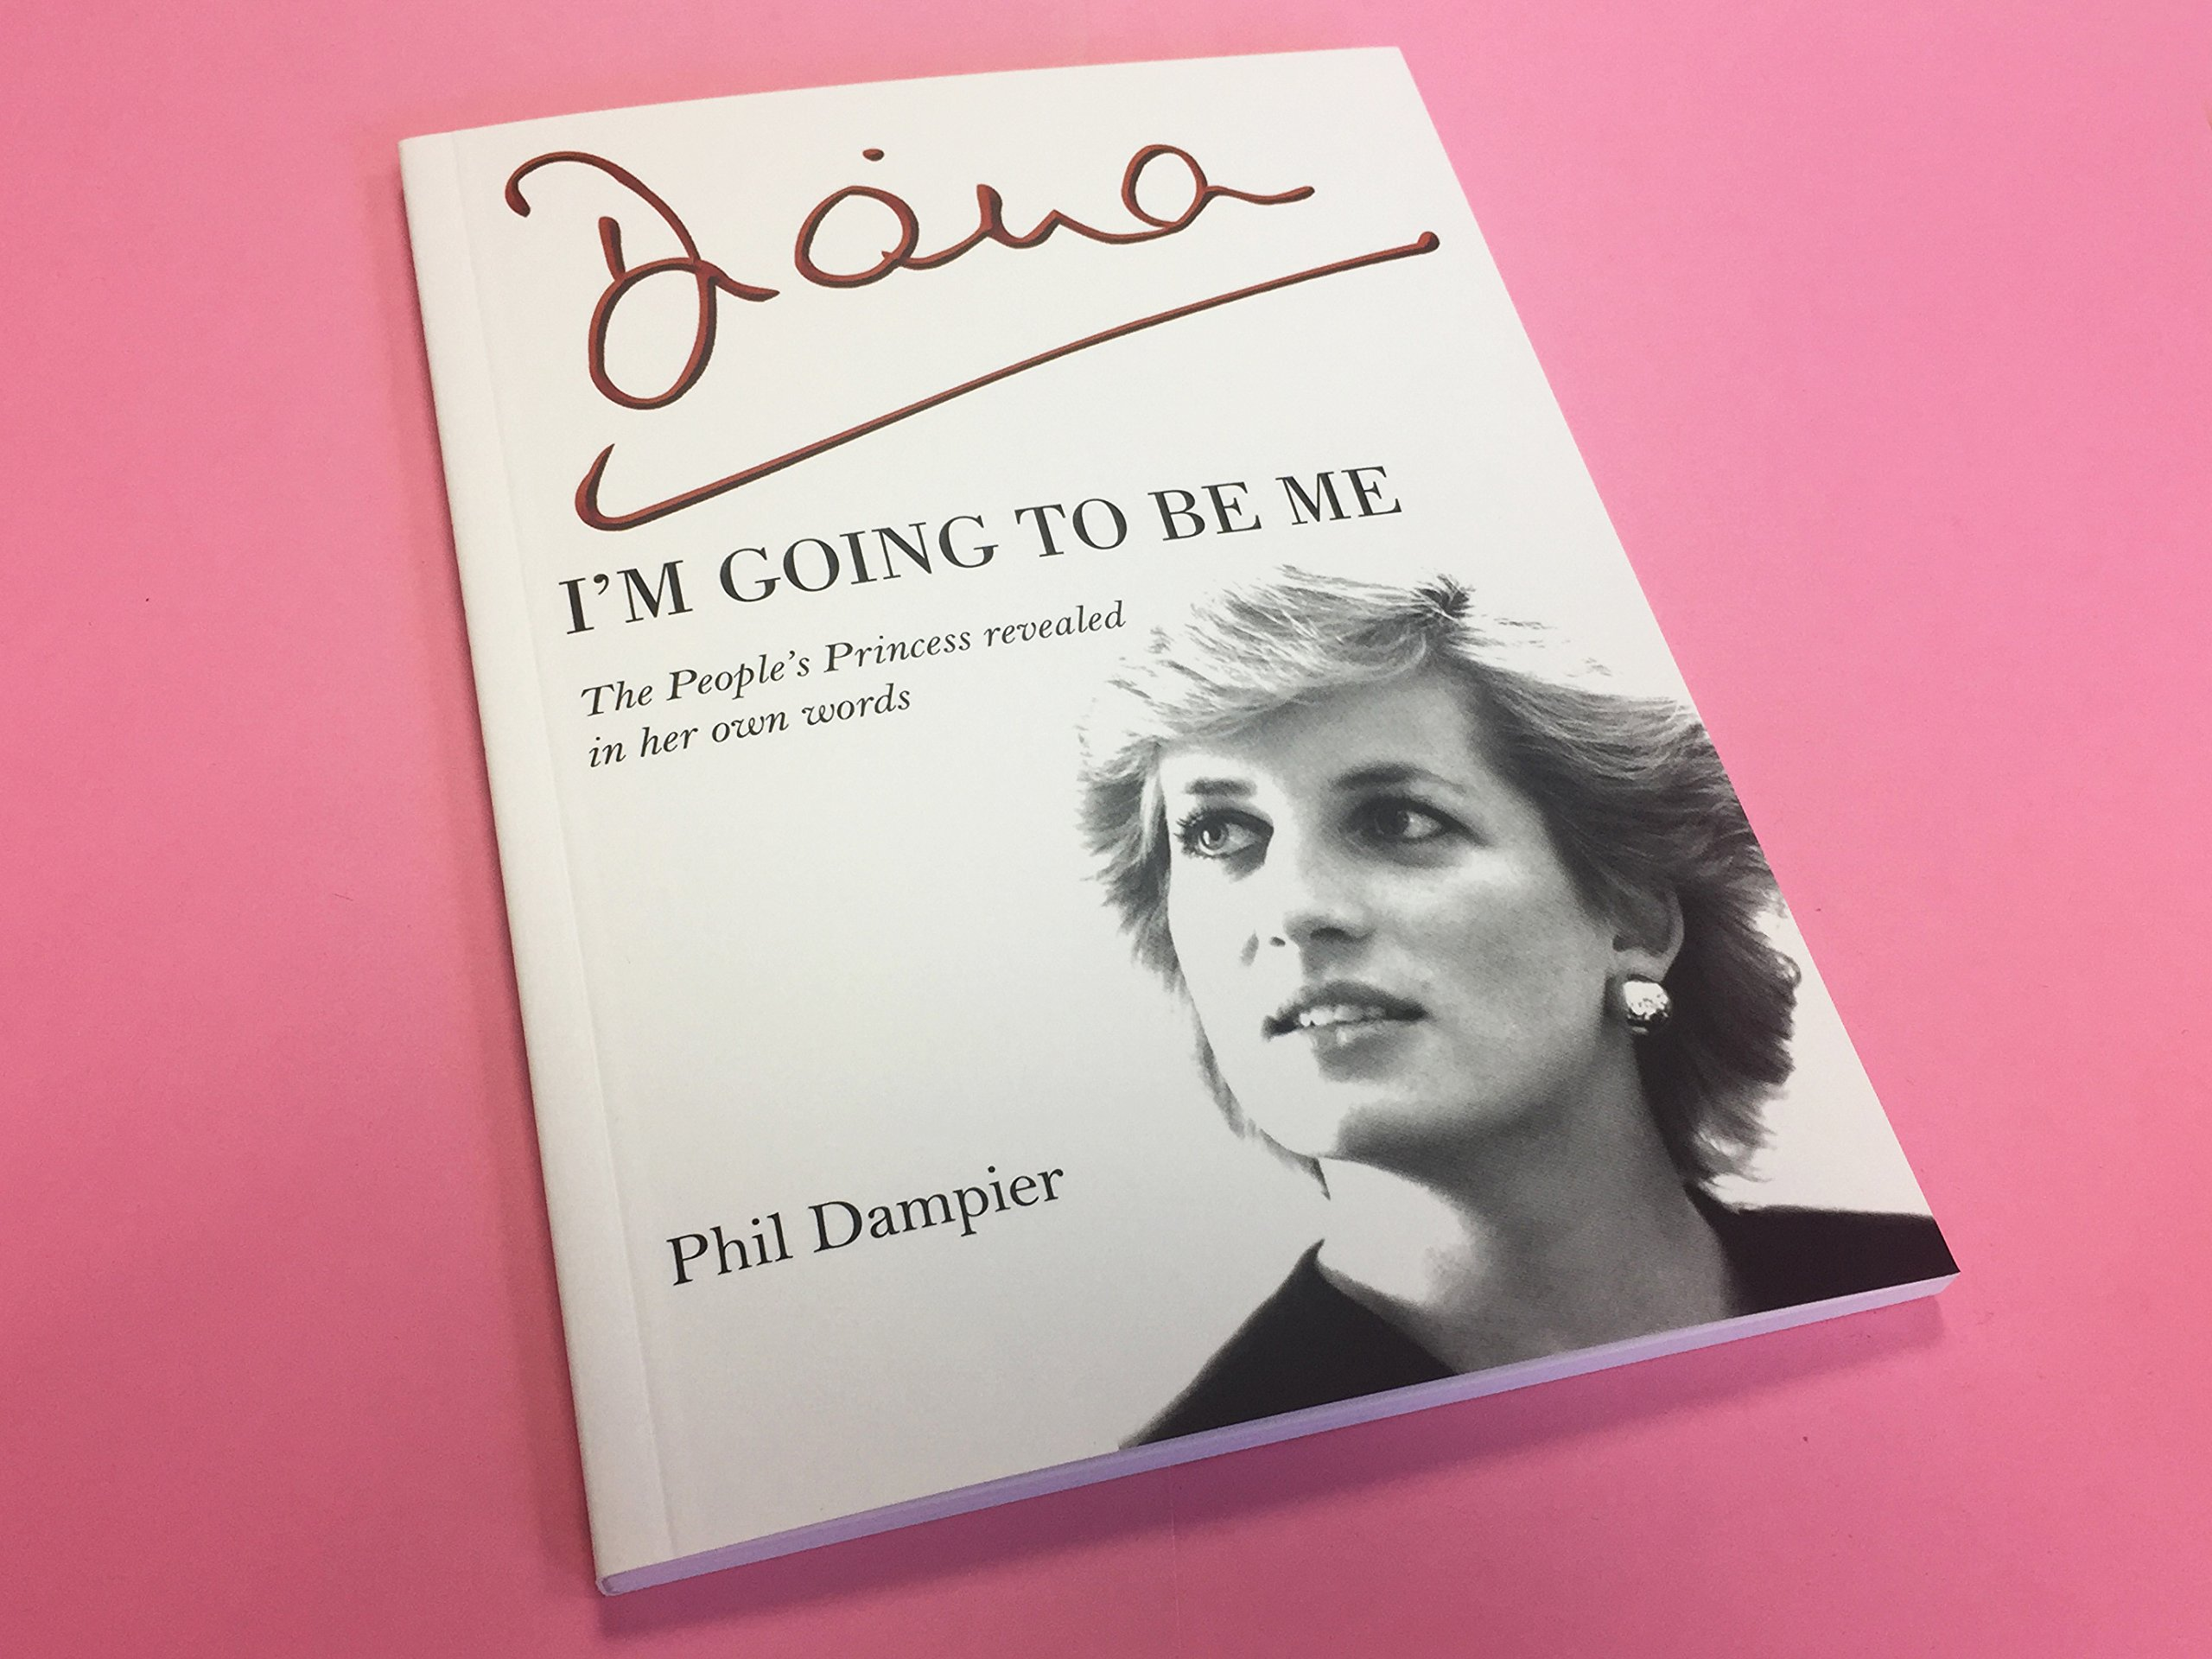 the Peoples Princess revealed in her own words Diana Im Going to be Me